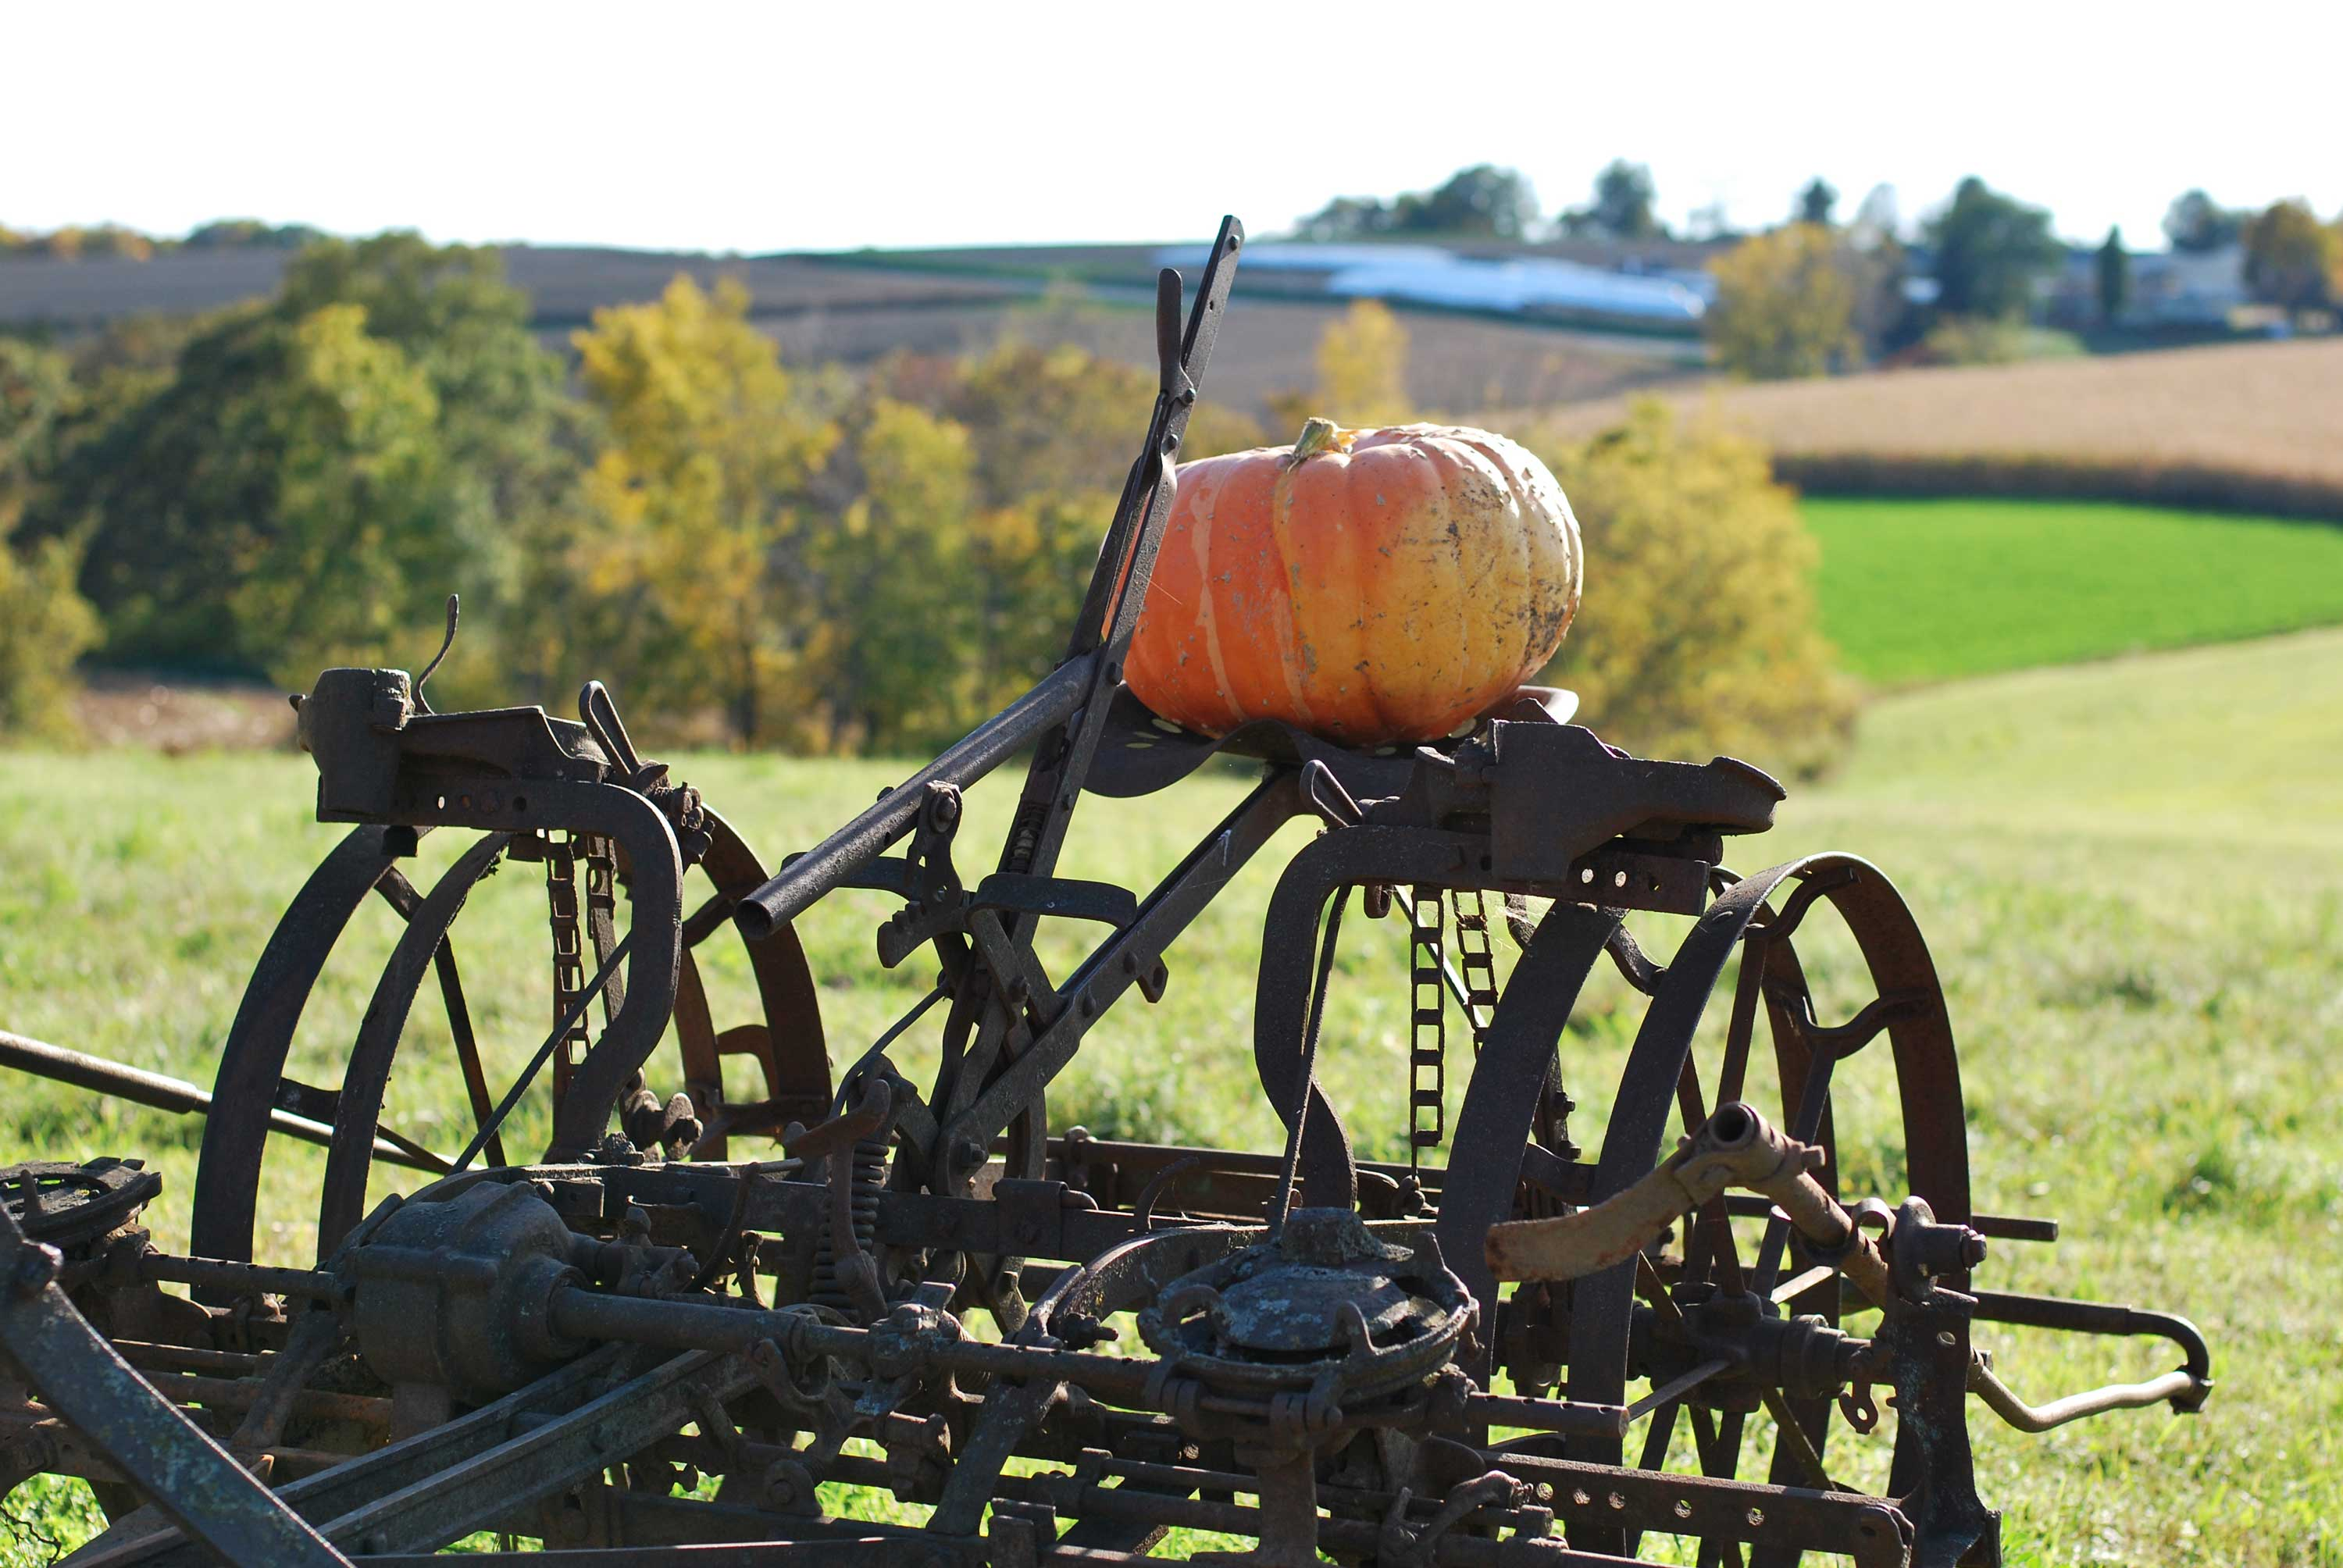 antique farm machinery, Sauk County, WIsconsin